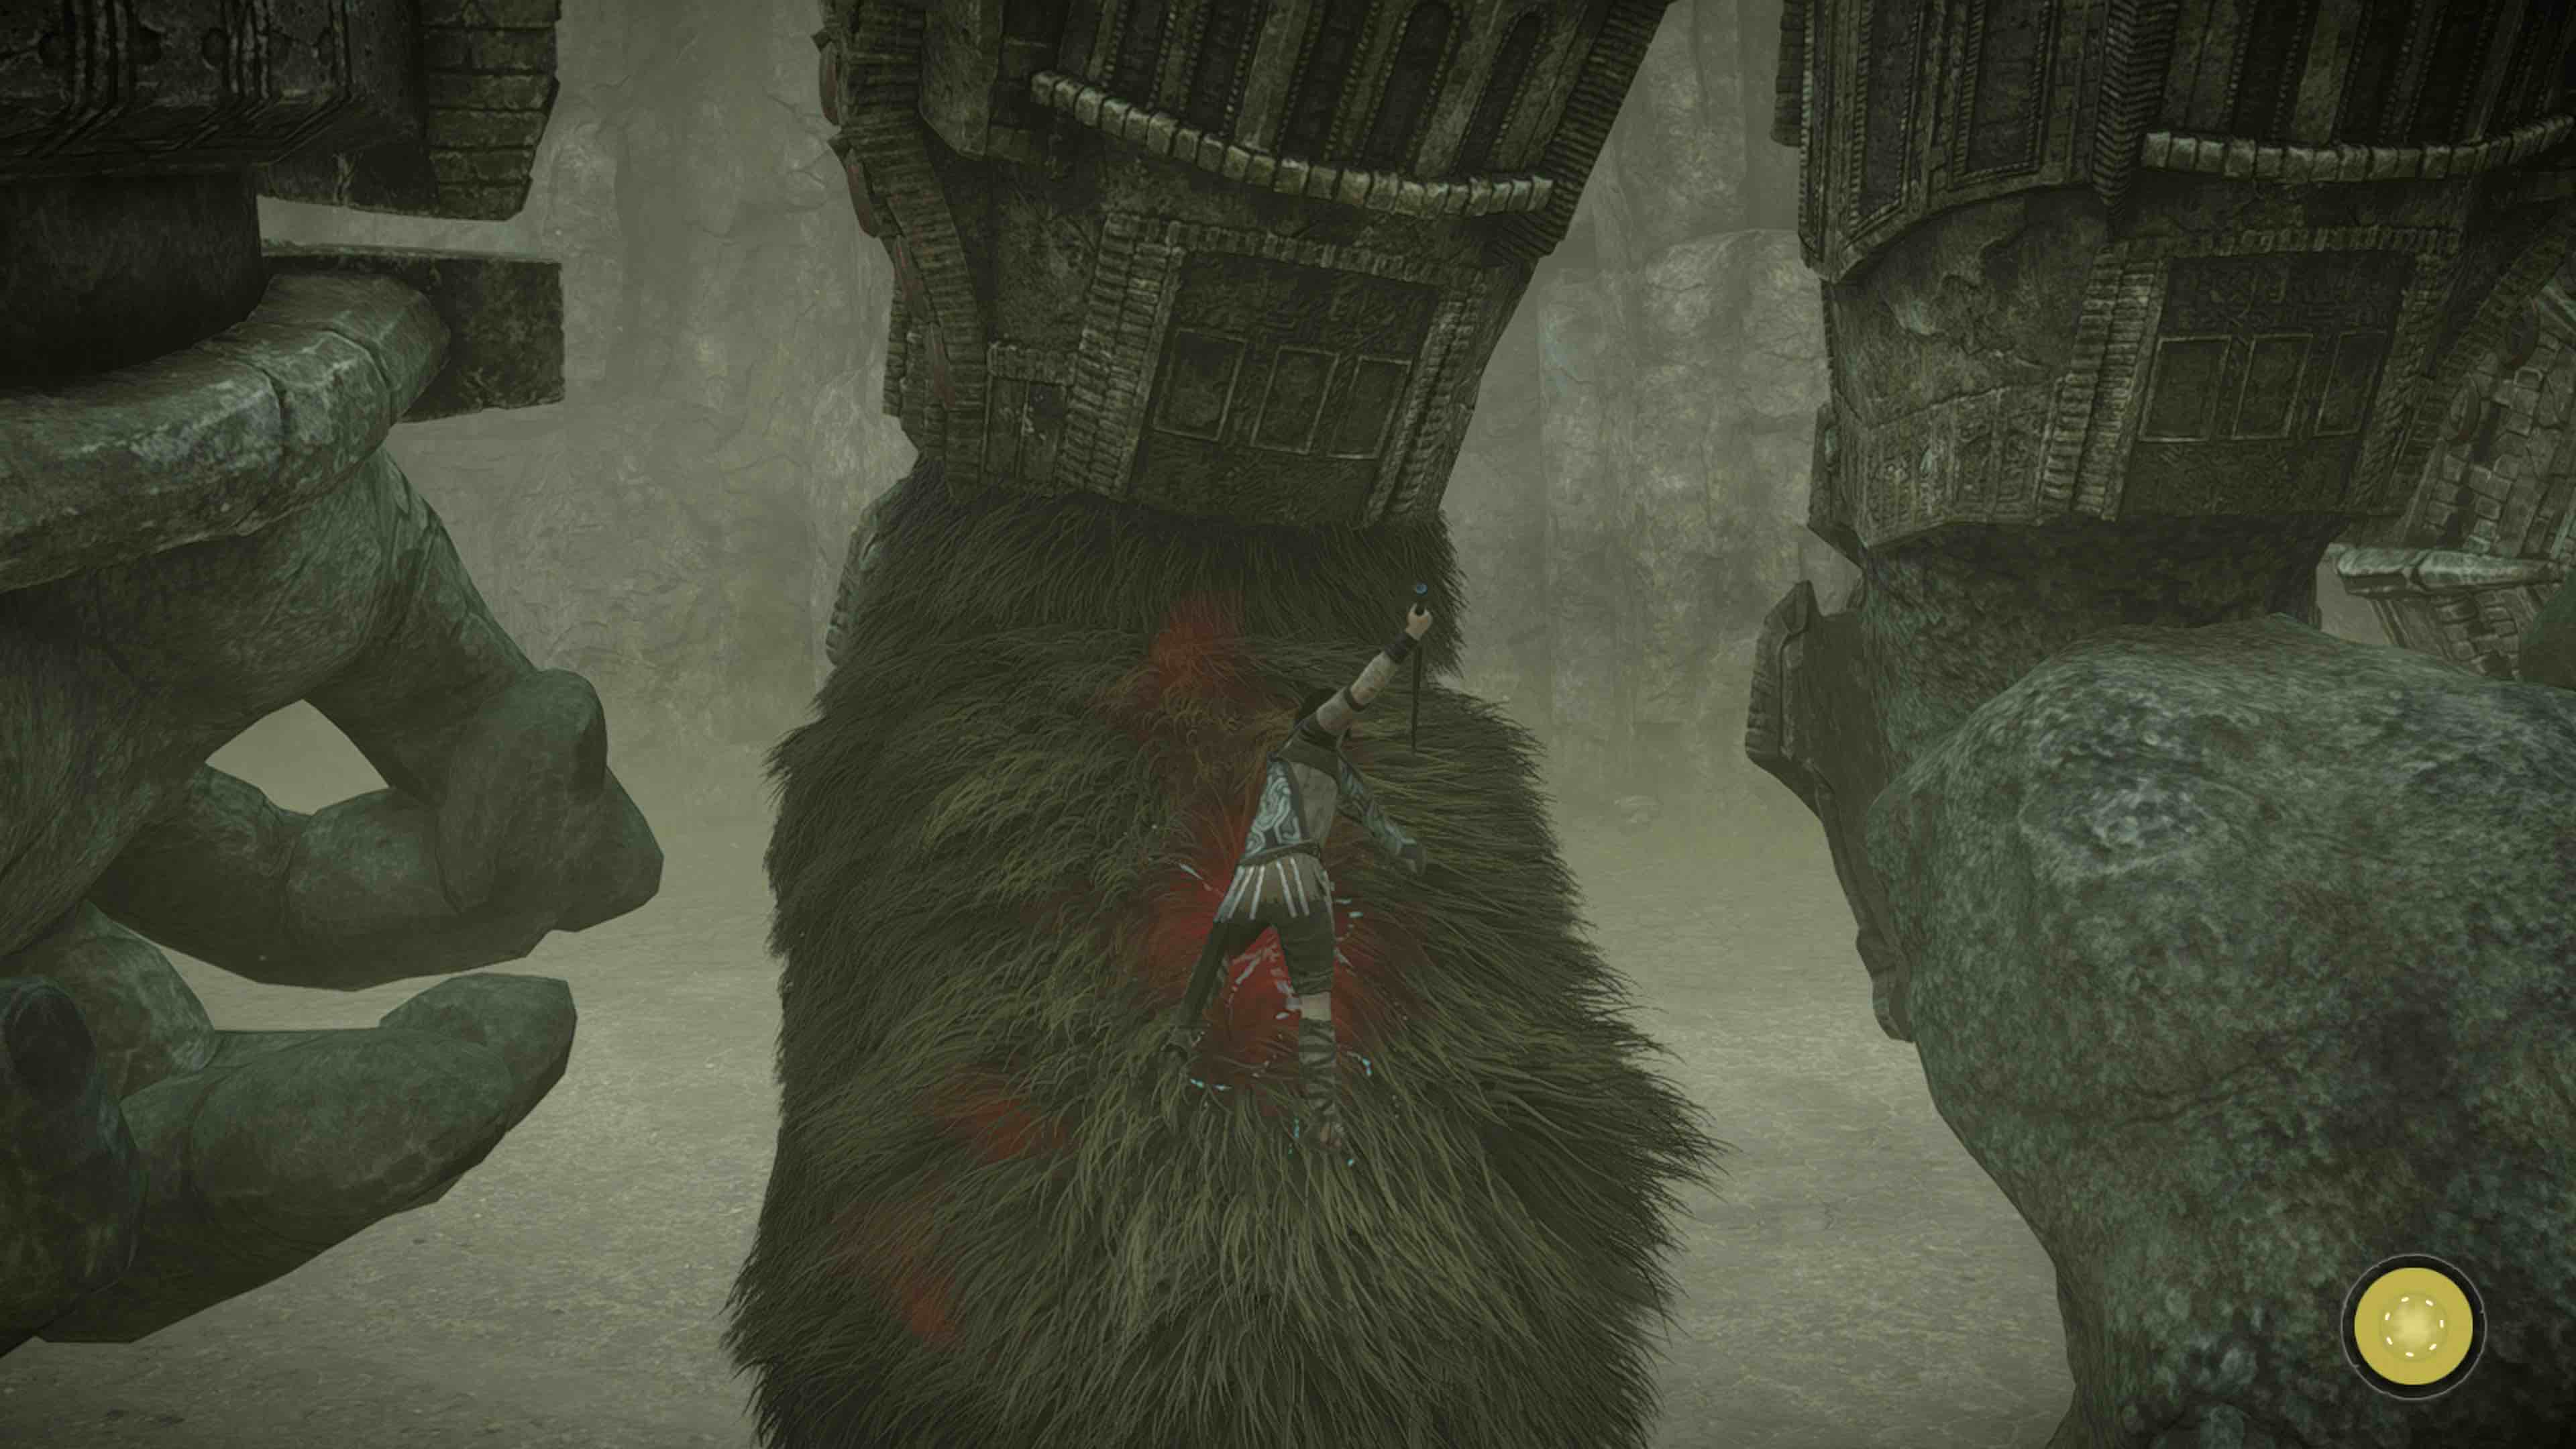 Shadow_of_the_Colossus_Avance_9